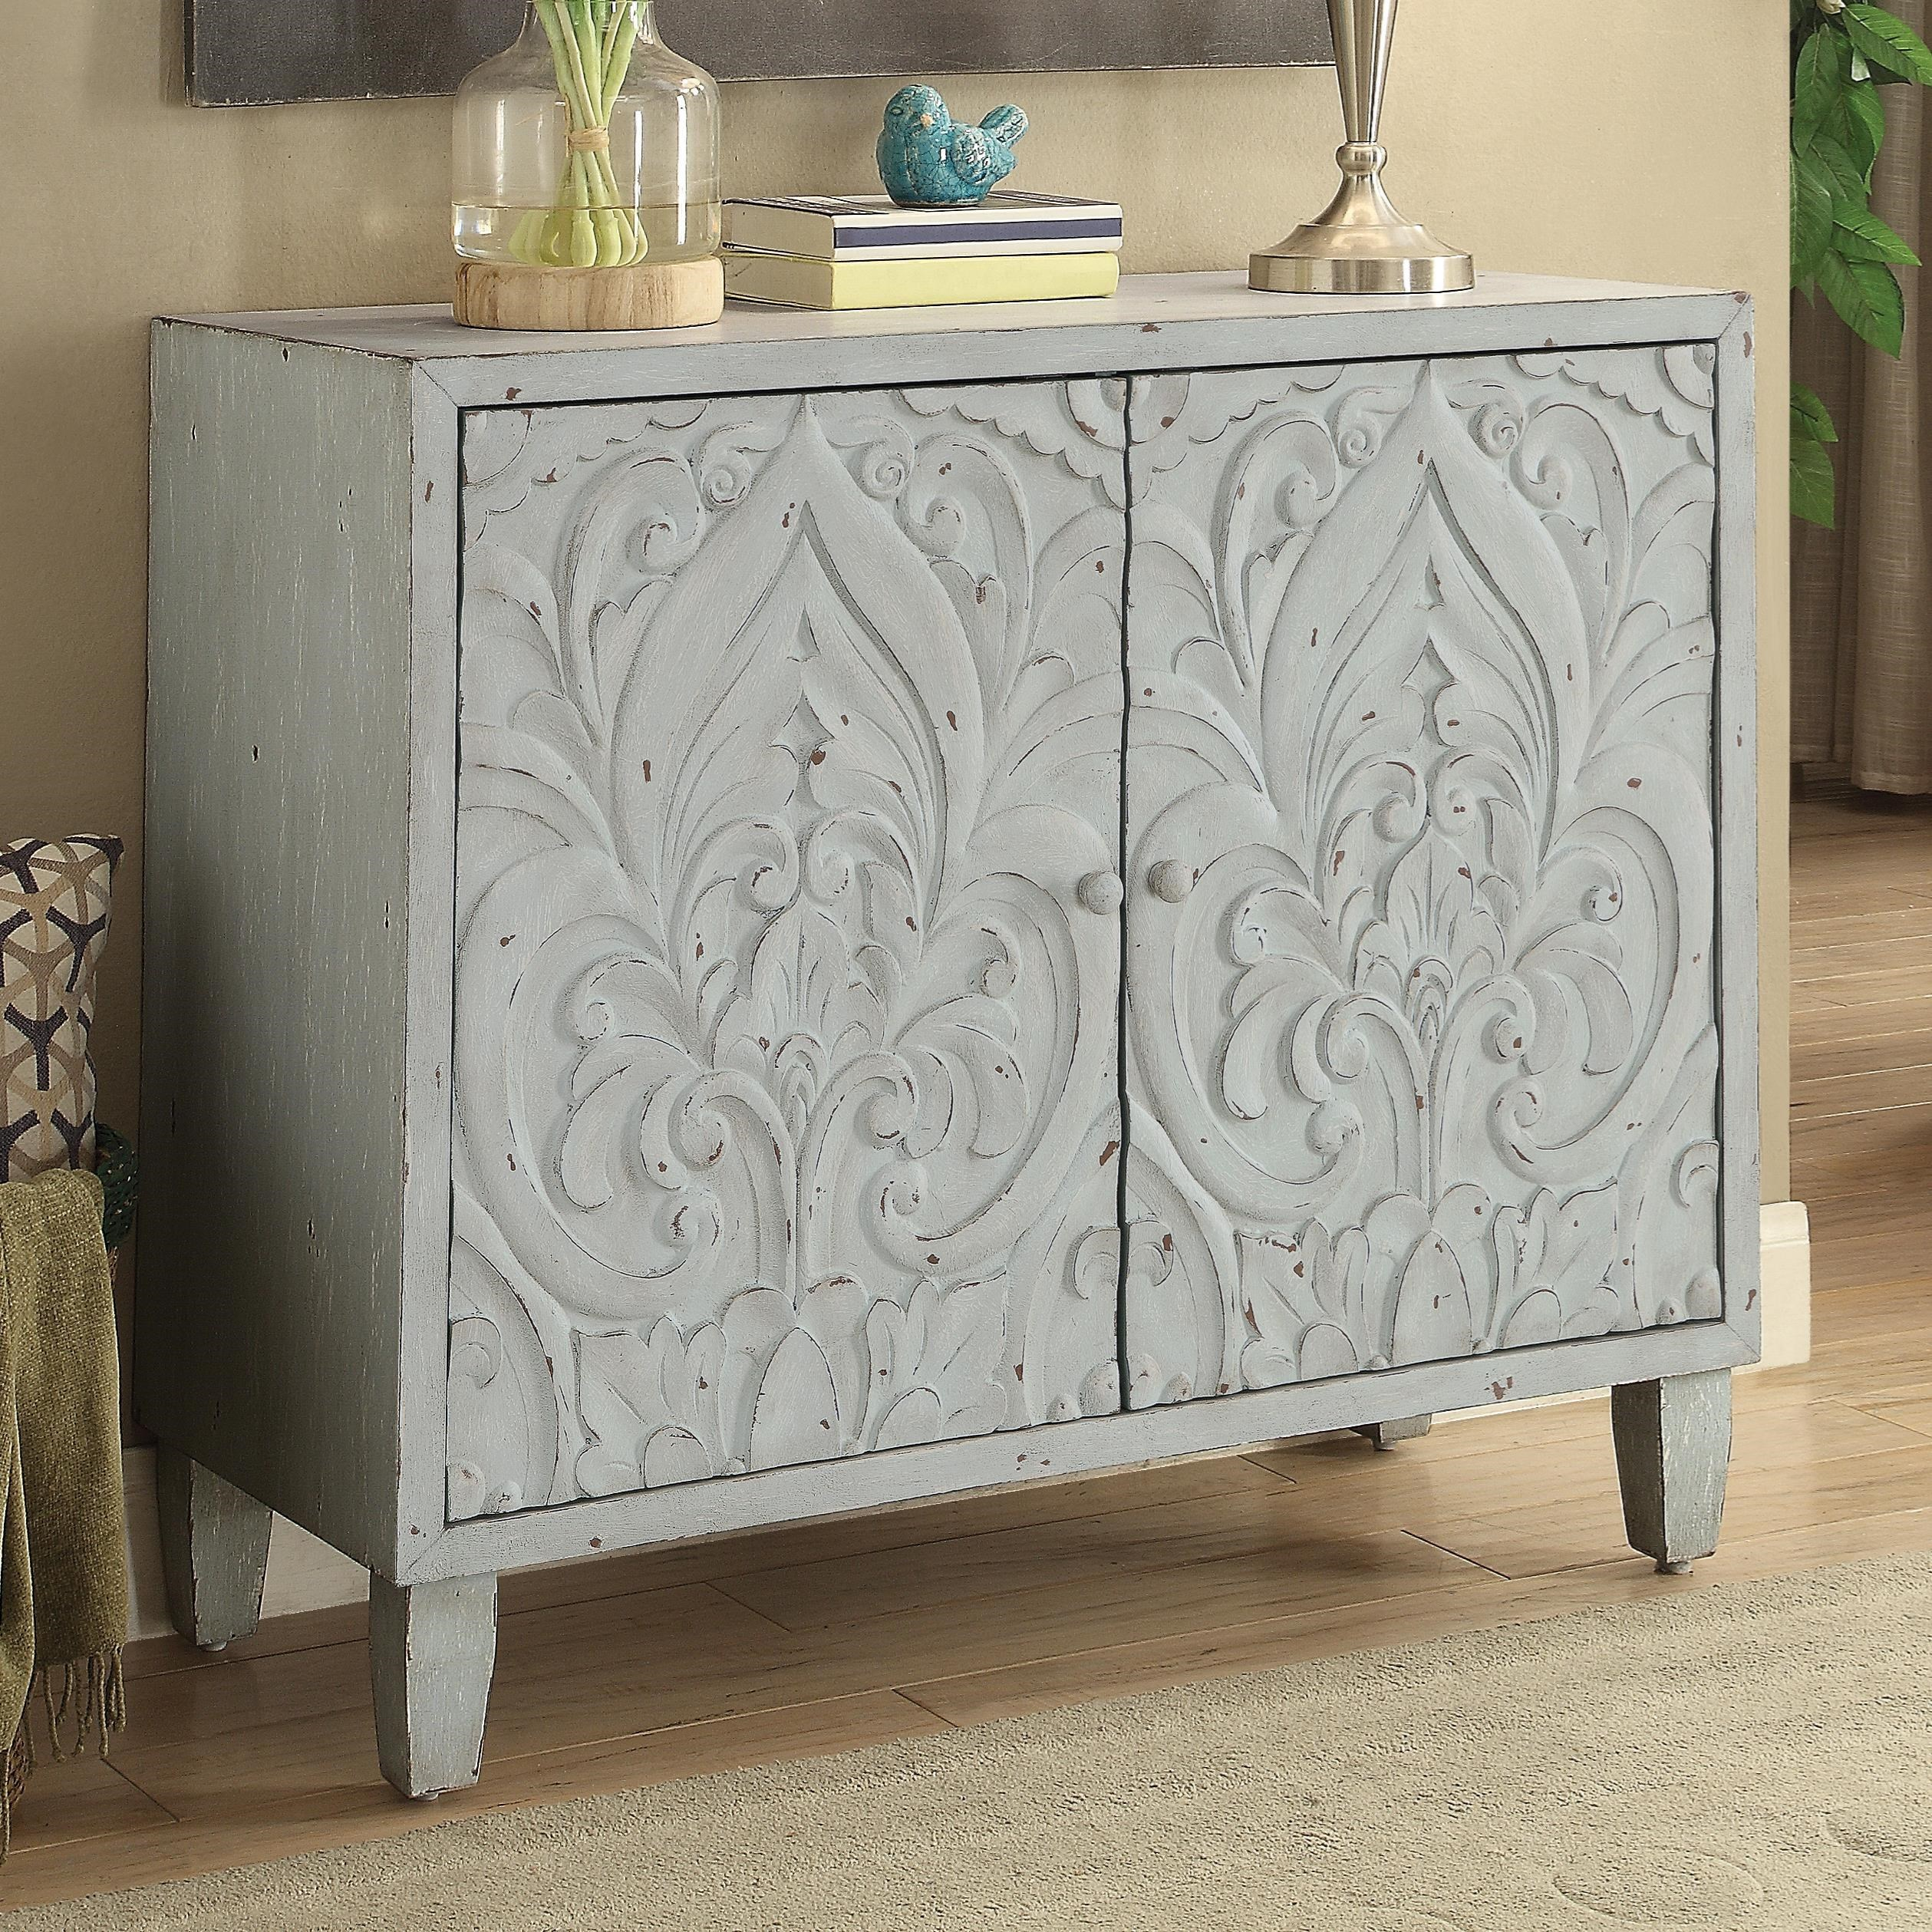 Coaster Accent Cabinets Accent Cabinet - Item Number: 950710